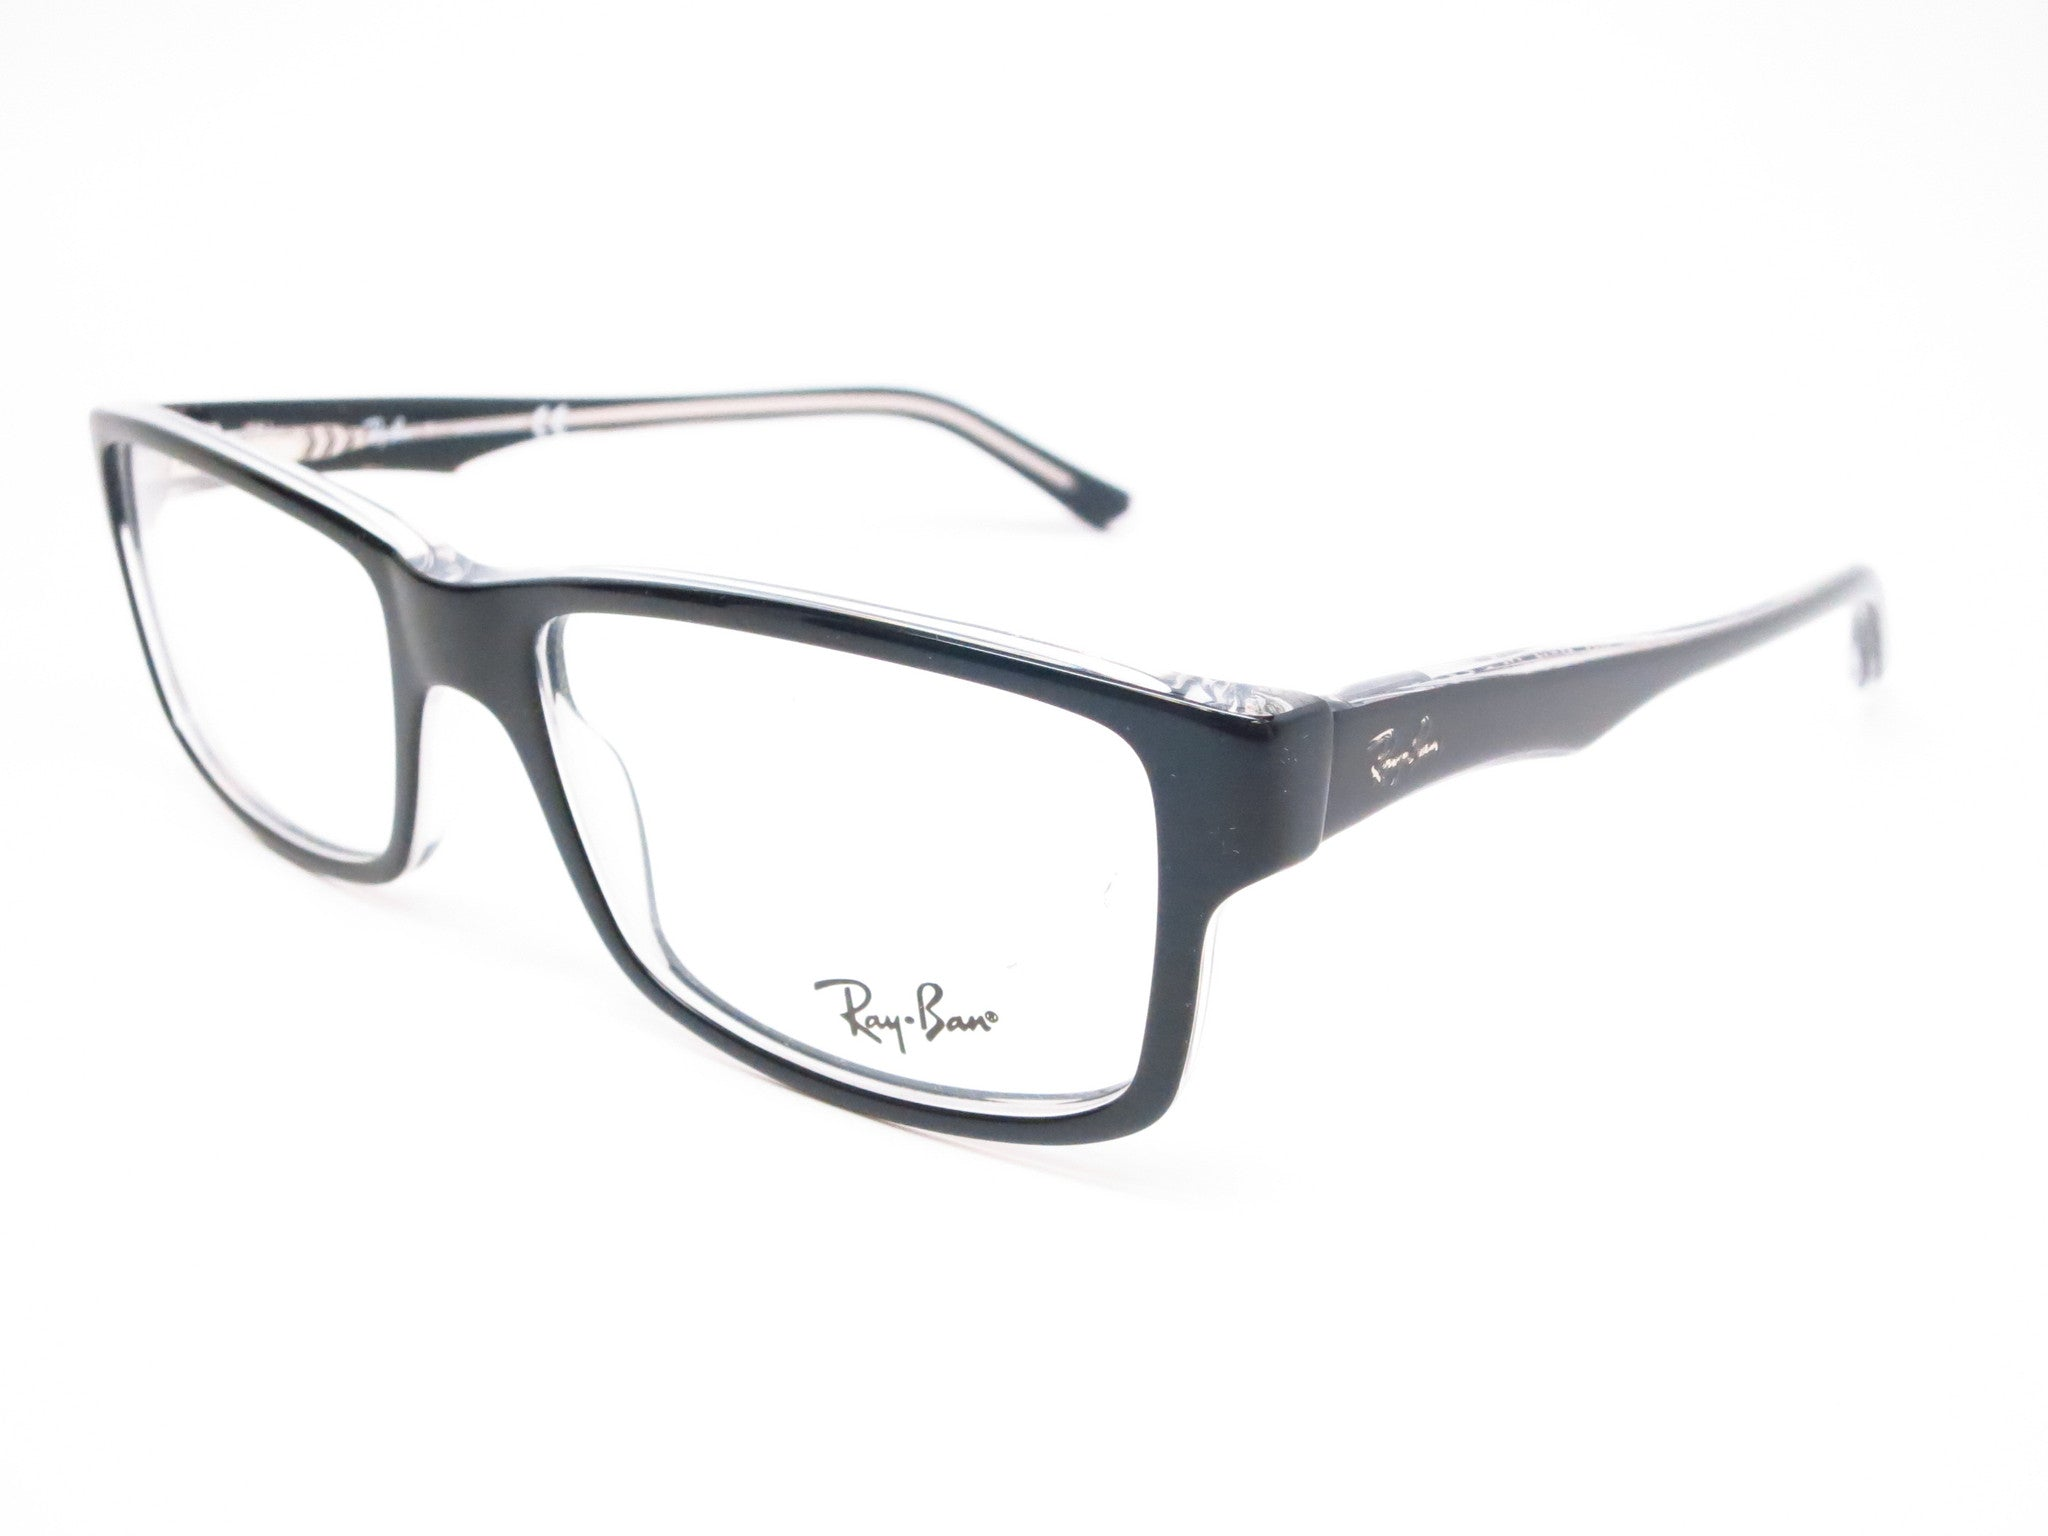 a798e747be03e Ray-Ban RB 5245 Eyeglasses - Eye Heart Shades - Ray-Ban - Eyeglasses